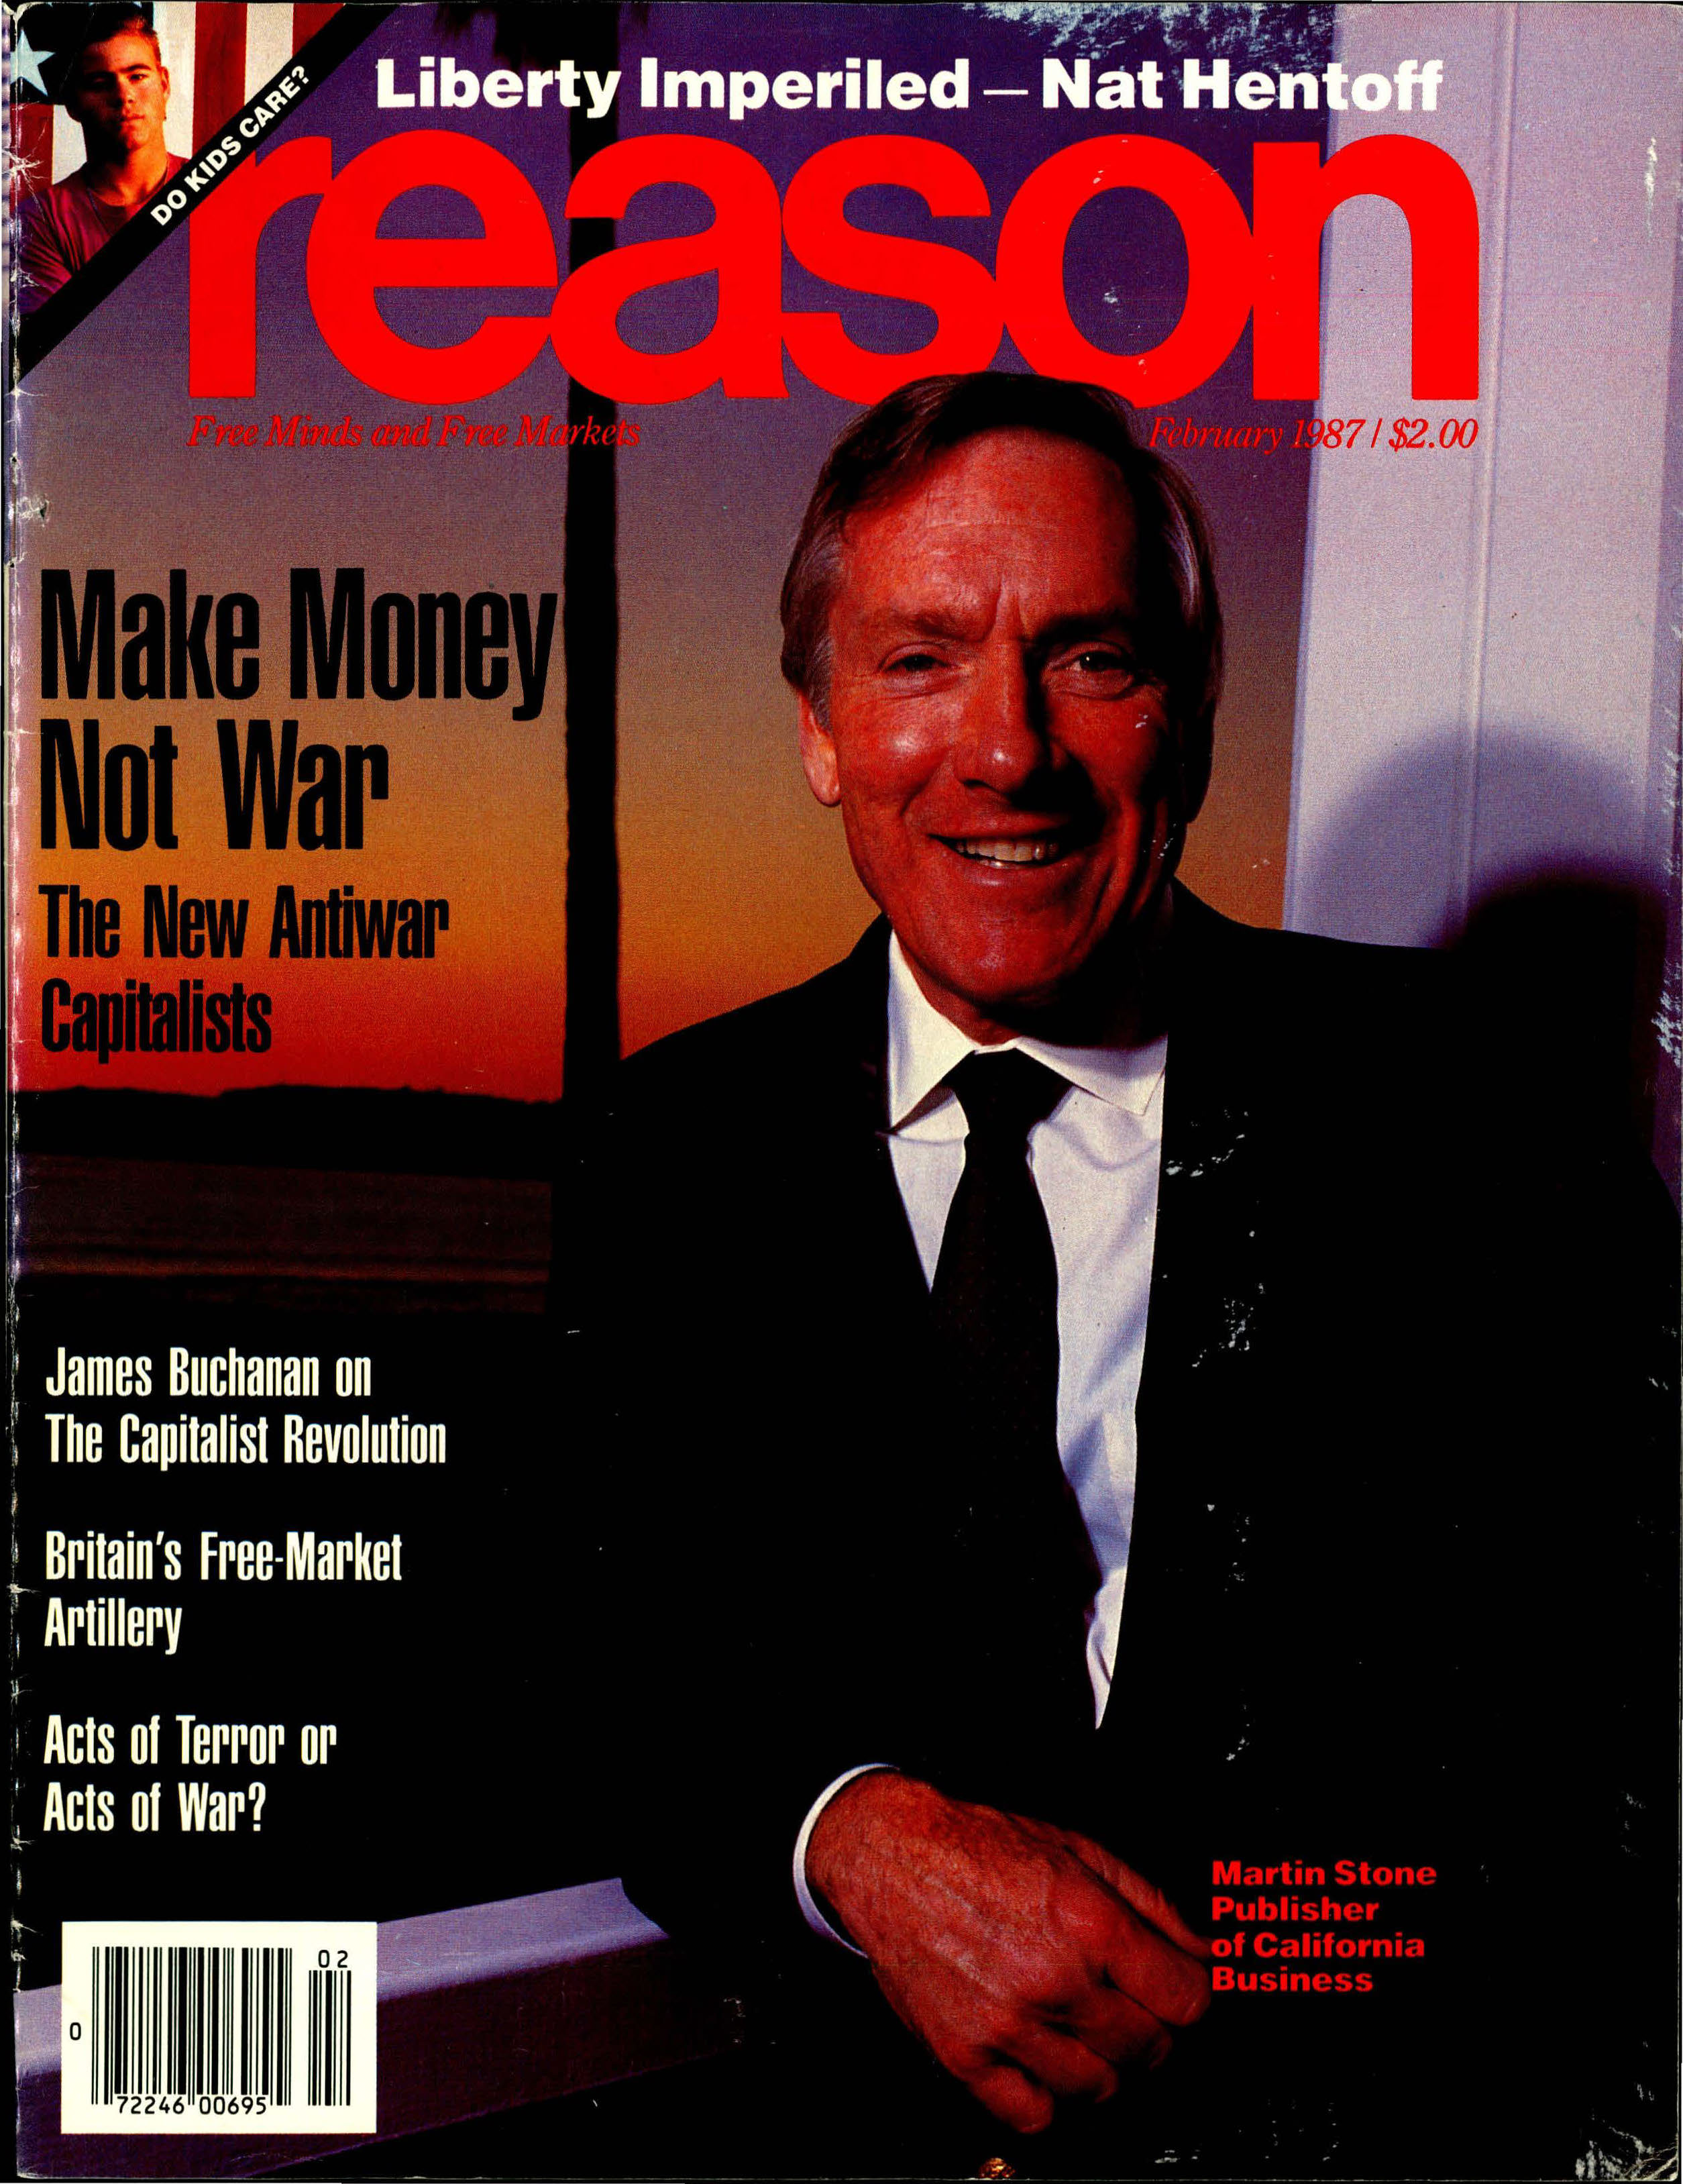 Reason Magazine, February 1987 cover image